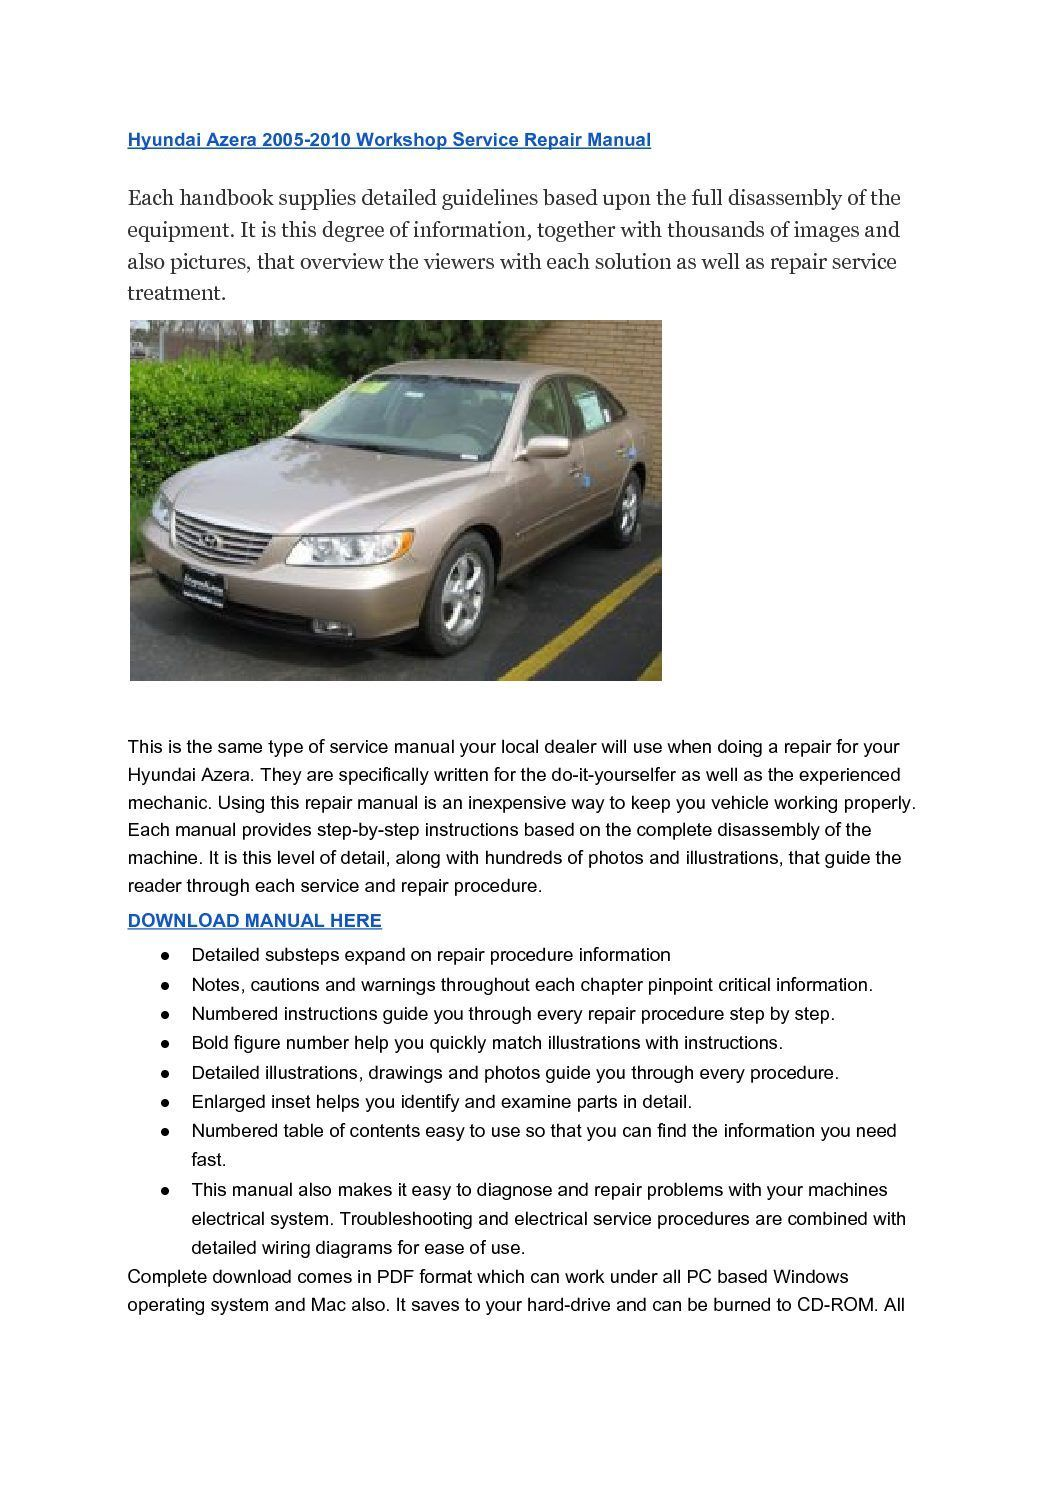 assistance hyundai azera 2005 2010 workshop service repair manual hyundai azera 2005 2010 workshop service repair manual notes warns as well as cautions  [ 1056 x 1495 Pixel ]